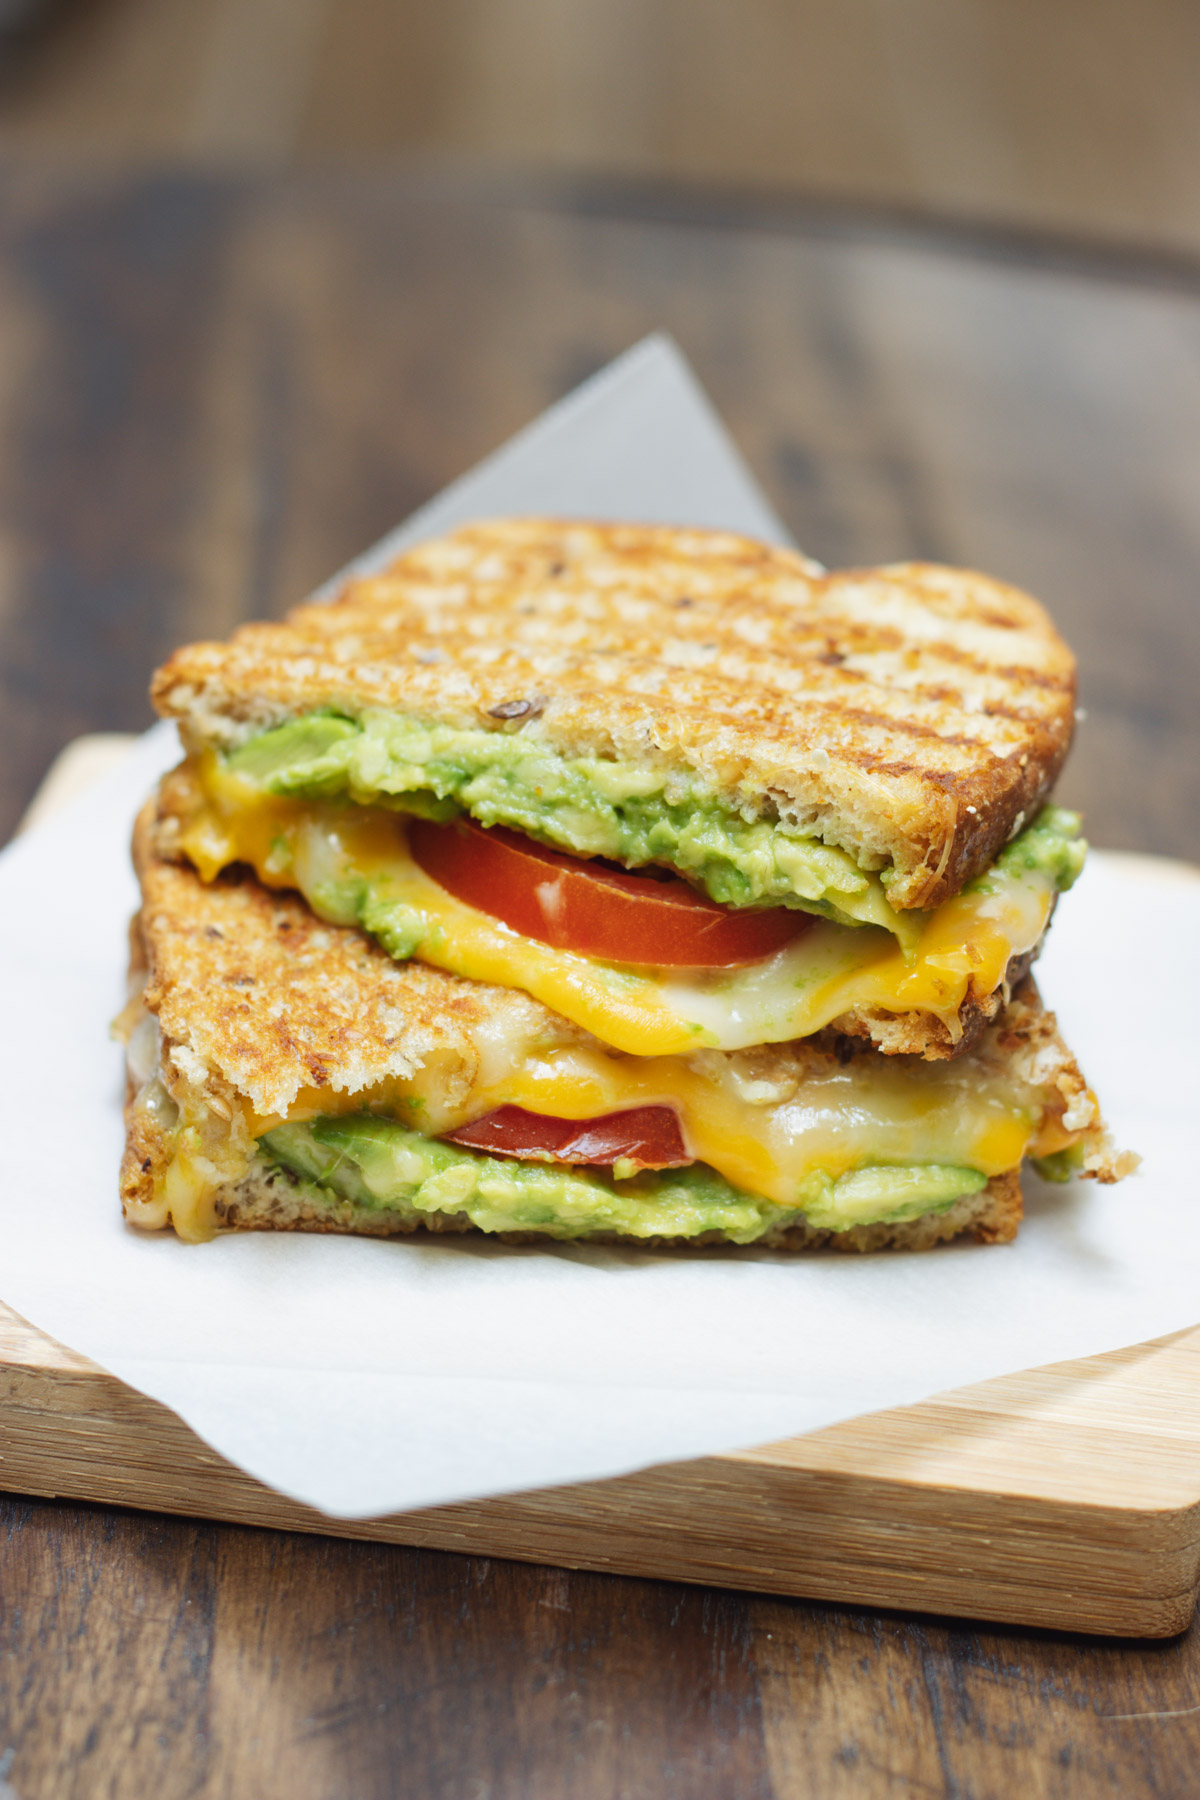 Two halves of a tomato and avocado grilled cheese sandwich stacked on parchment paper on a wooden board.